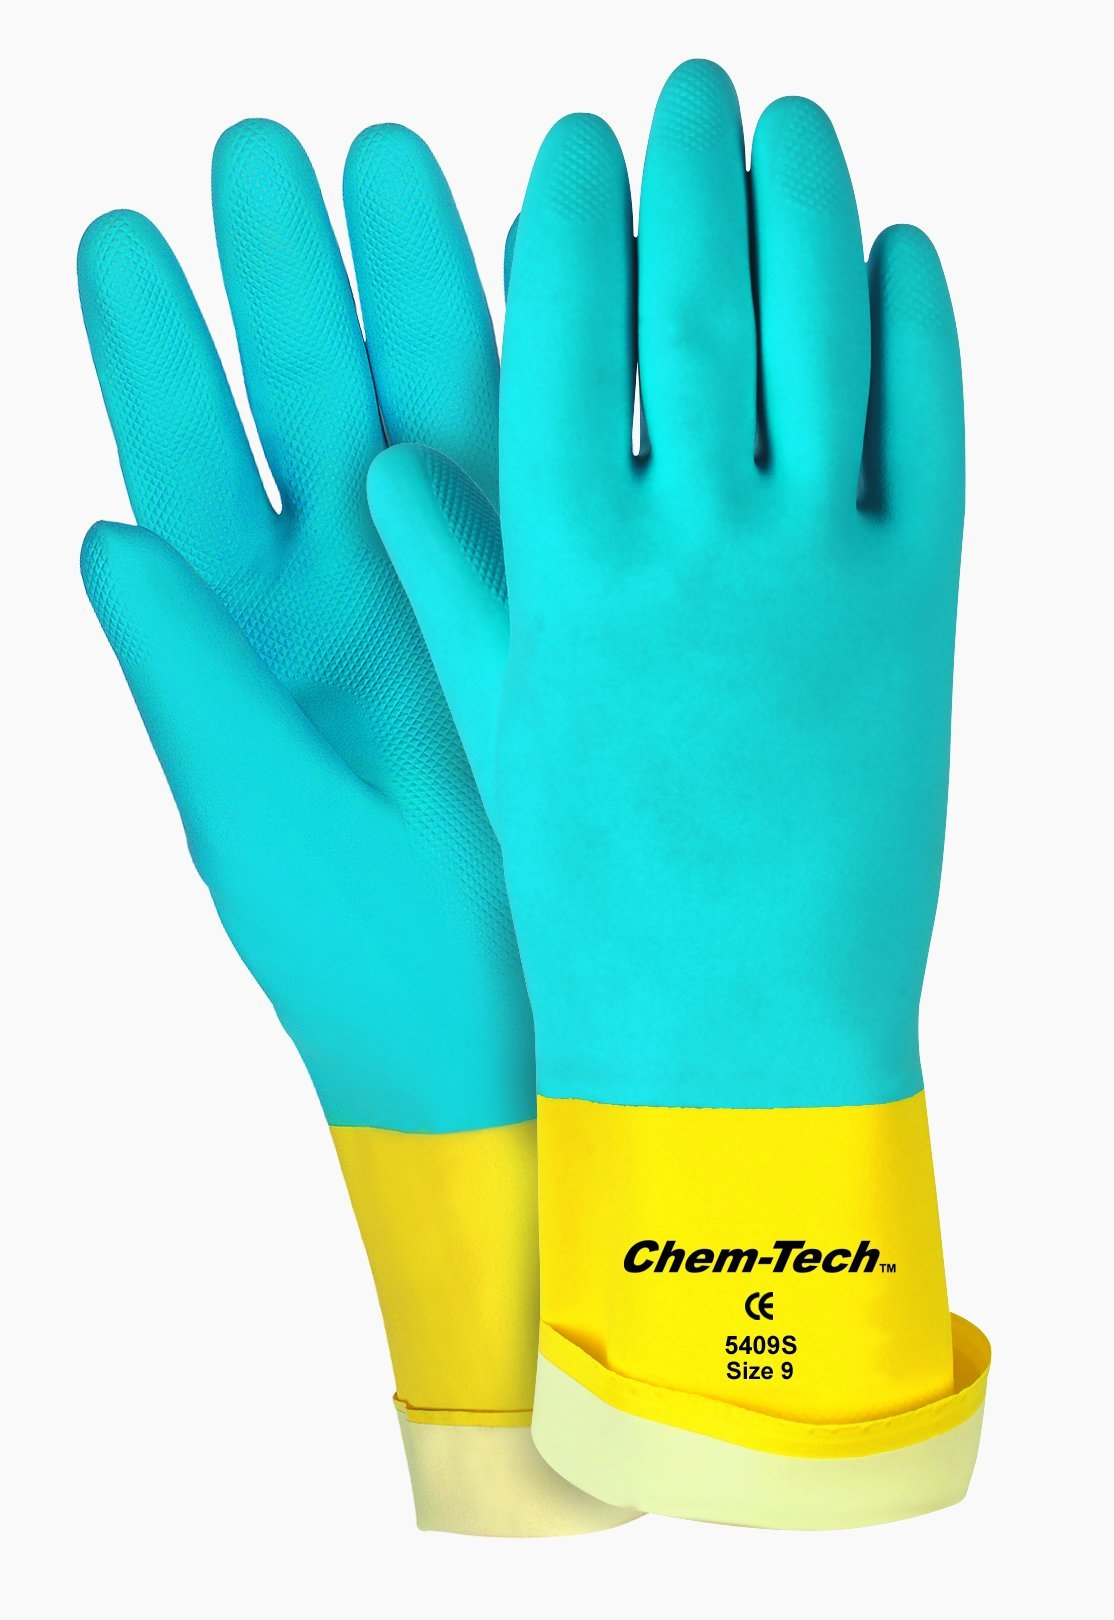 MCR Safety 5409S 9-1/2-Inch Chem-Tech Seamless Nitrile Rubber Gloves with Straight Cuff and Flocked Lining, Blue/Yellow, Large, 1-Pair